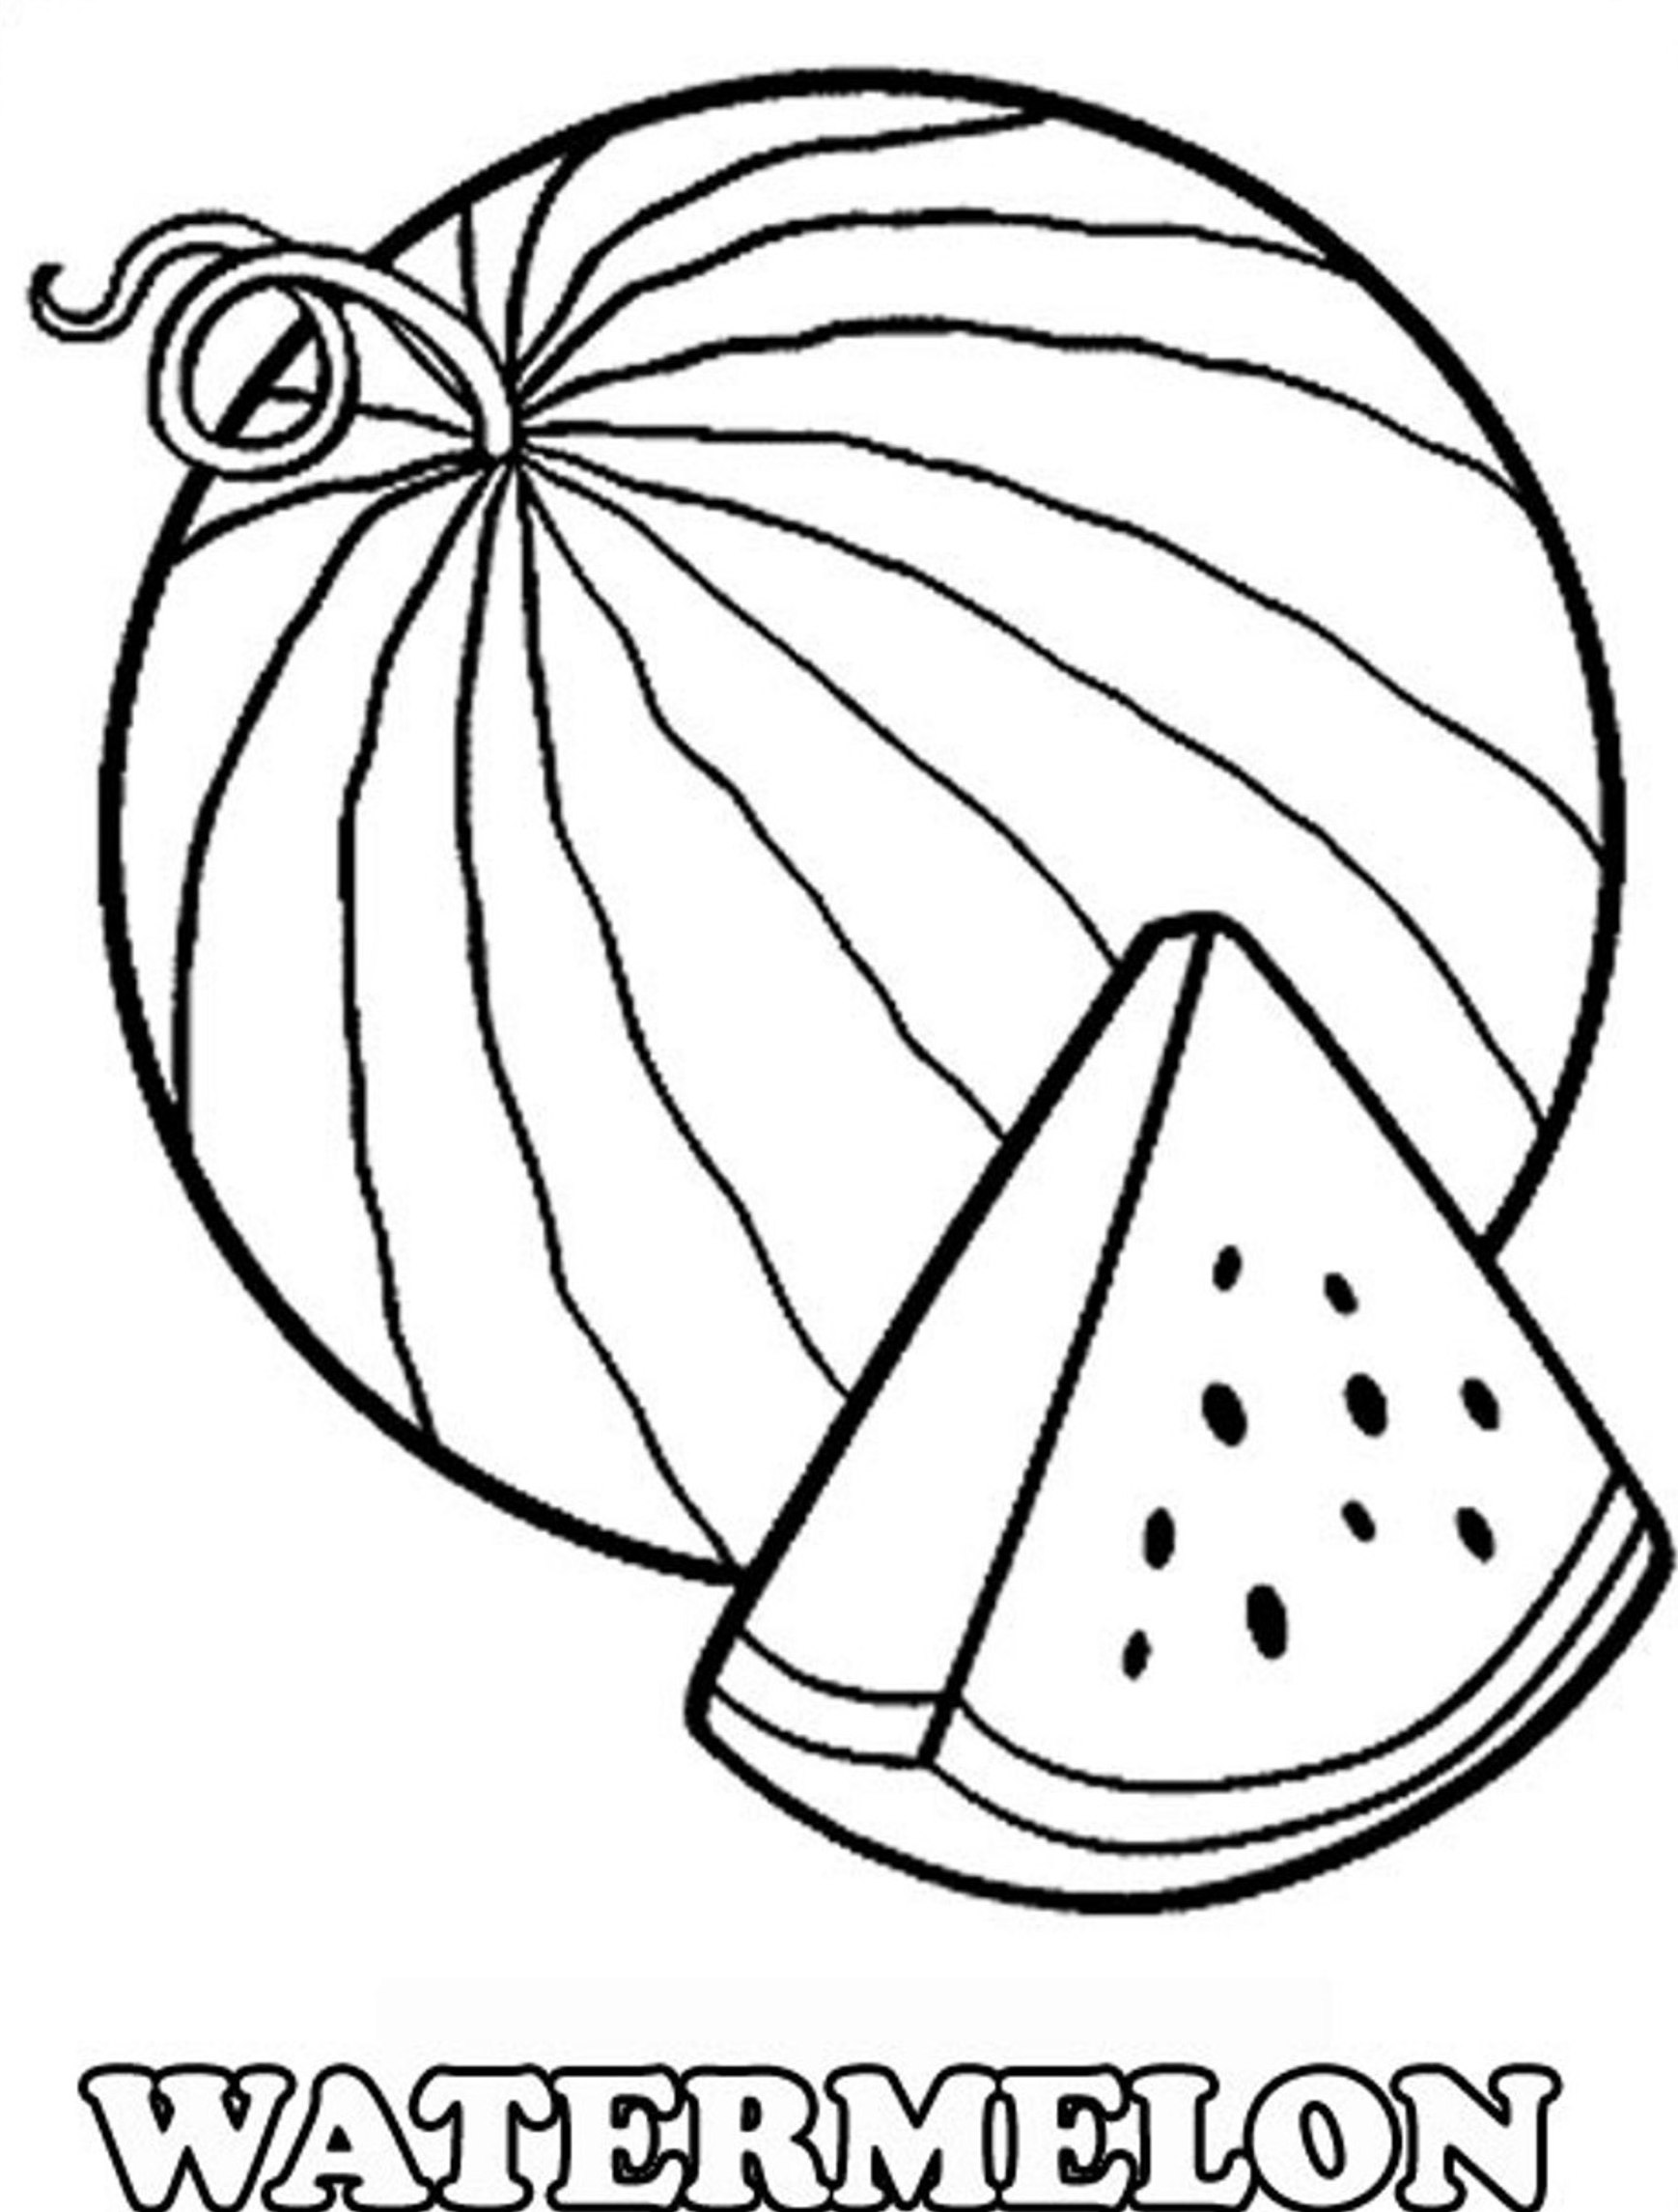 watermelon for coloring watermelon slice drawing at getdrawings free download coloring watermelon for